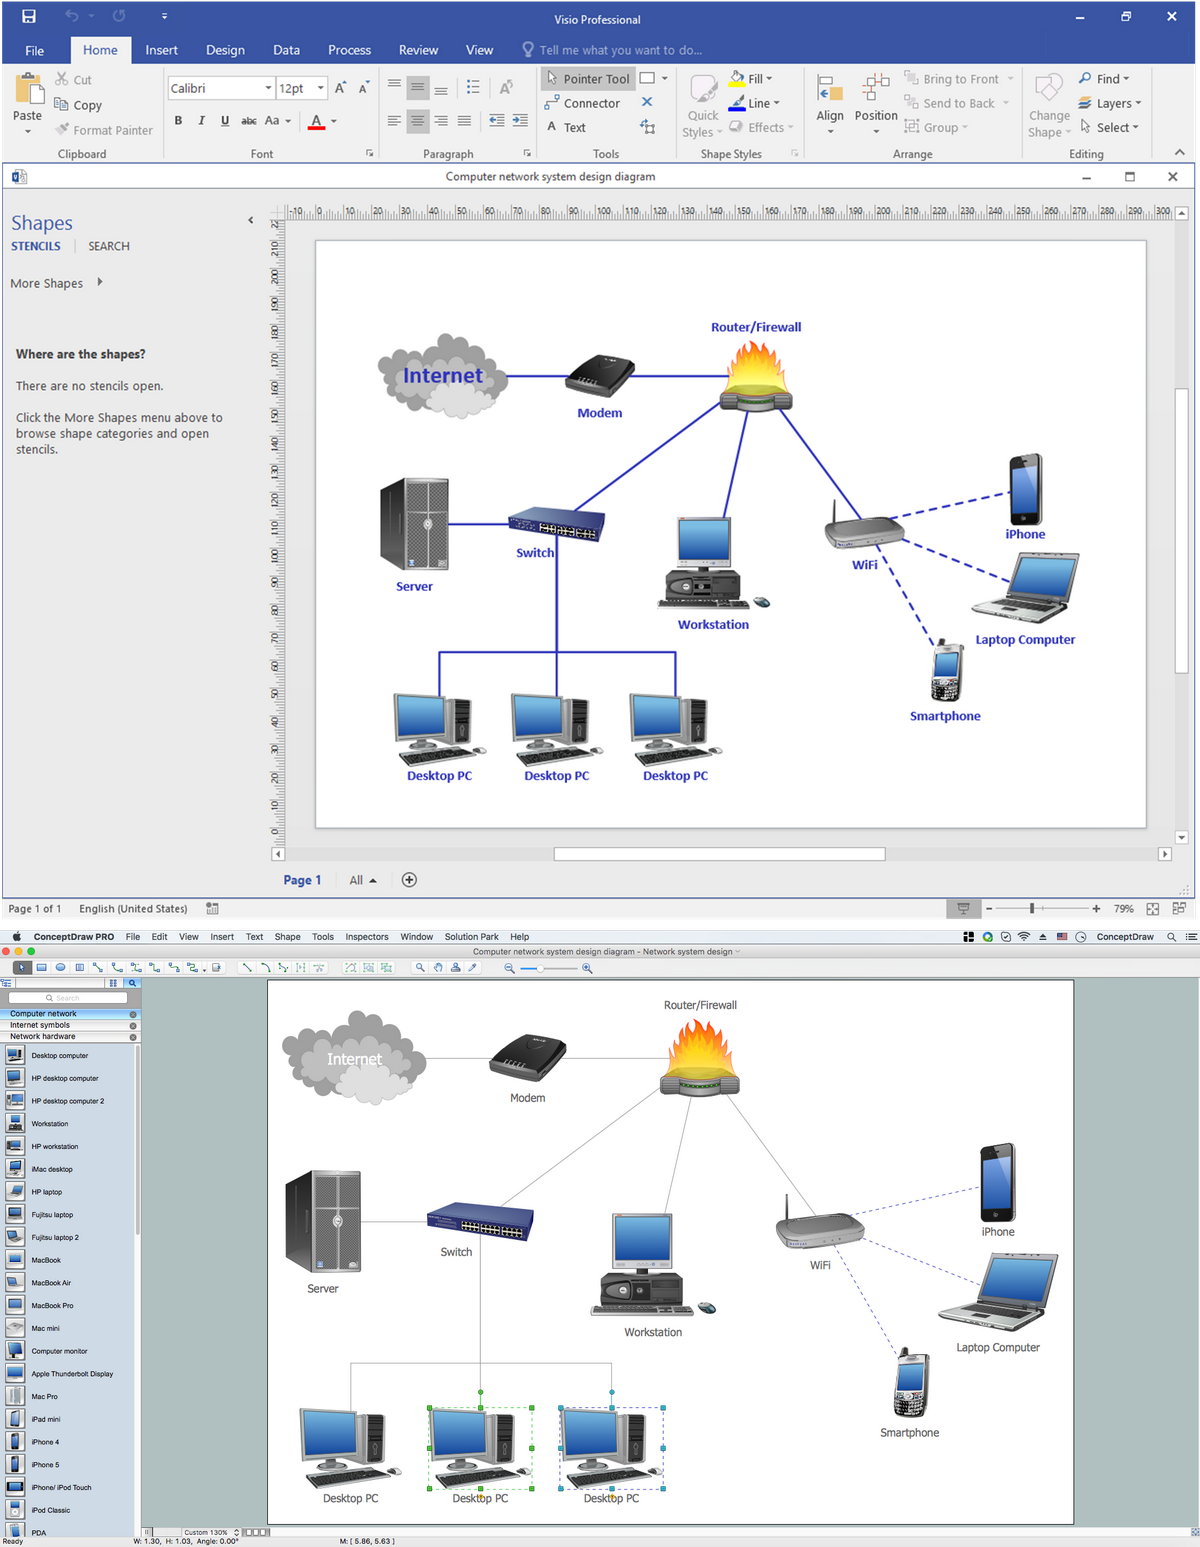 visio look a like diagrams - Open Visio Document Online